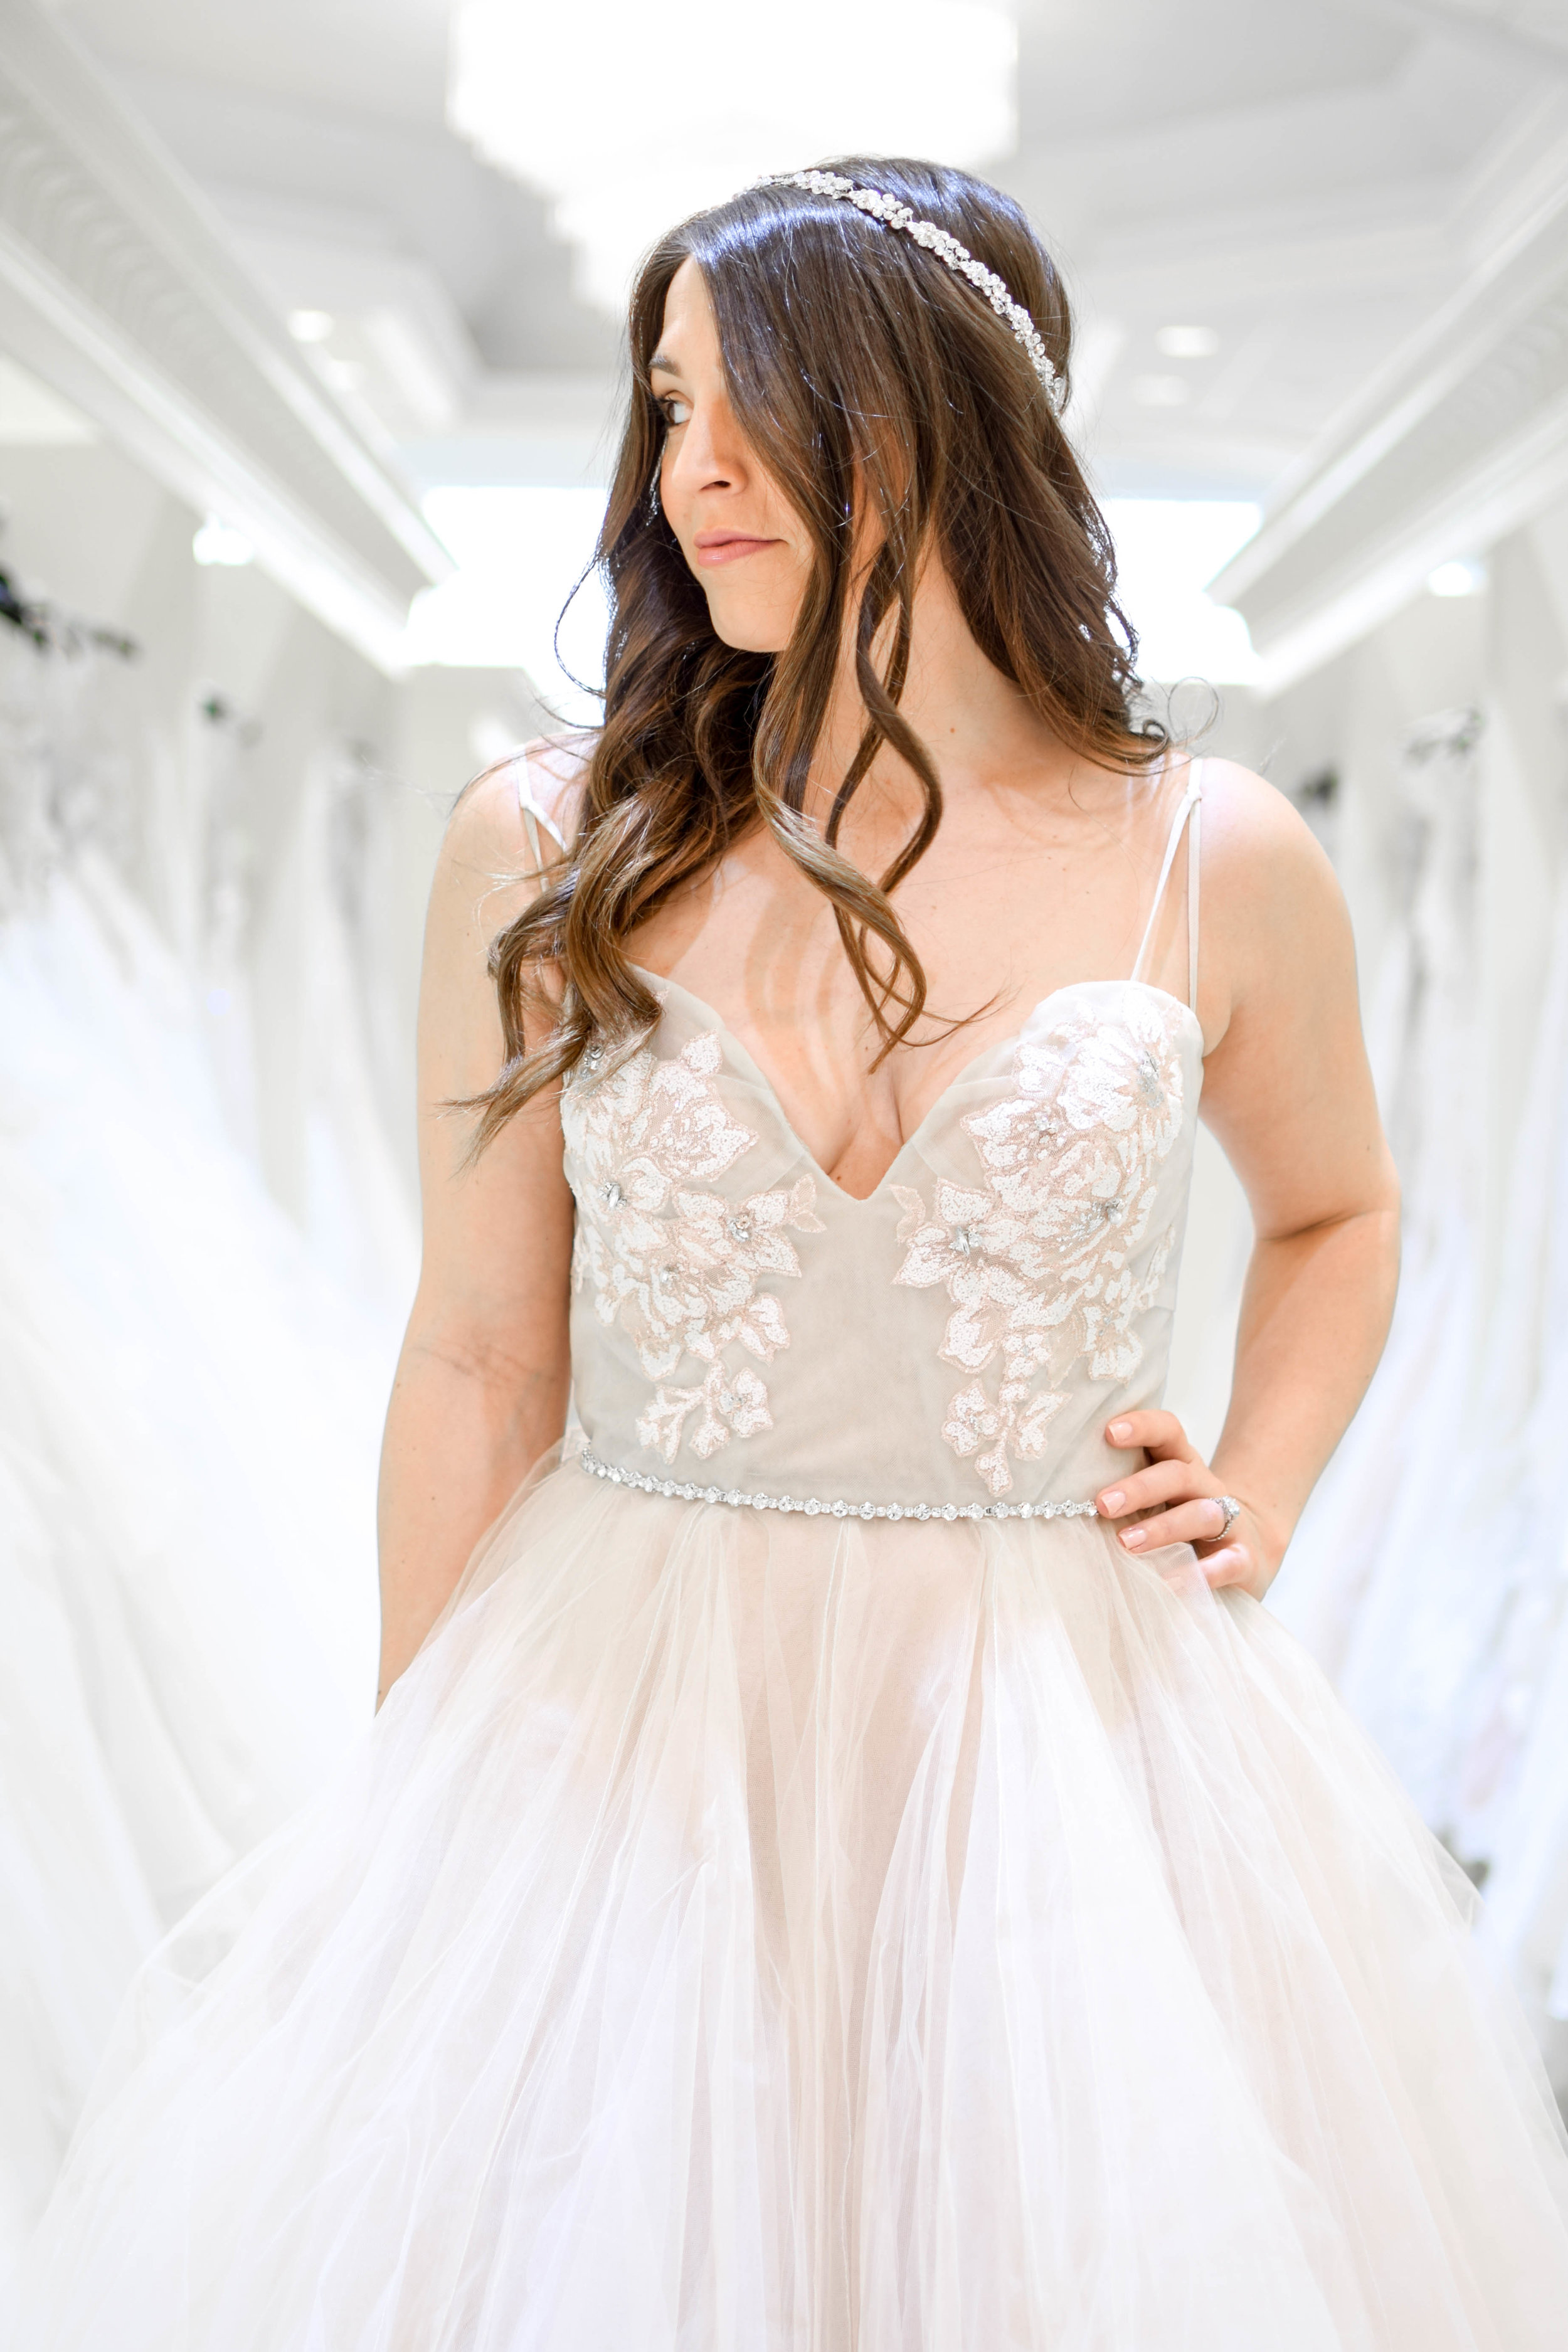 Three Tips for Finding the Perfect Wedding Dress | Pine Barren Beauty | wedding inspiration, wedding dress idea, blush wedding dress, Hayley Paige wedding dress, castle couture